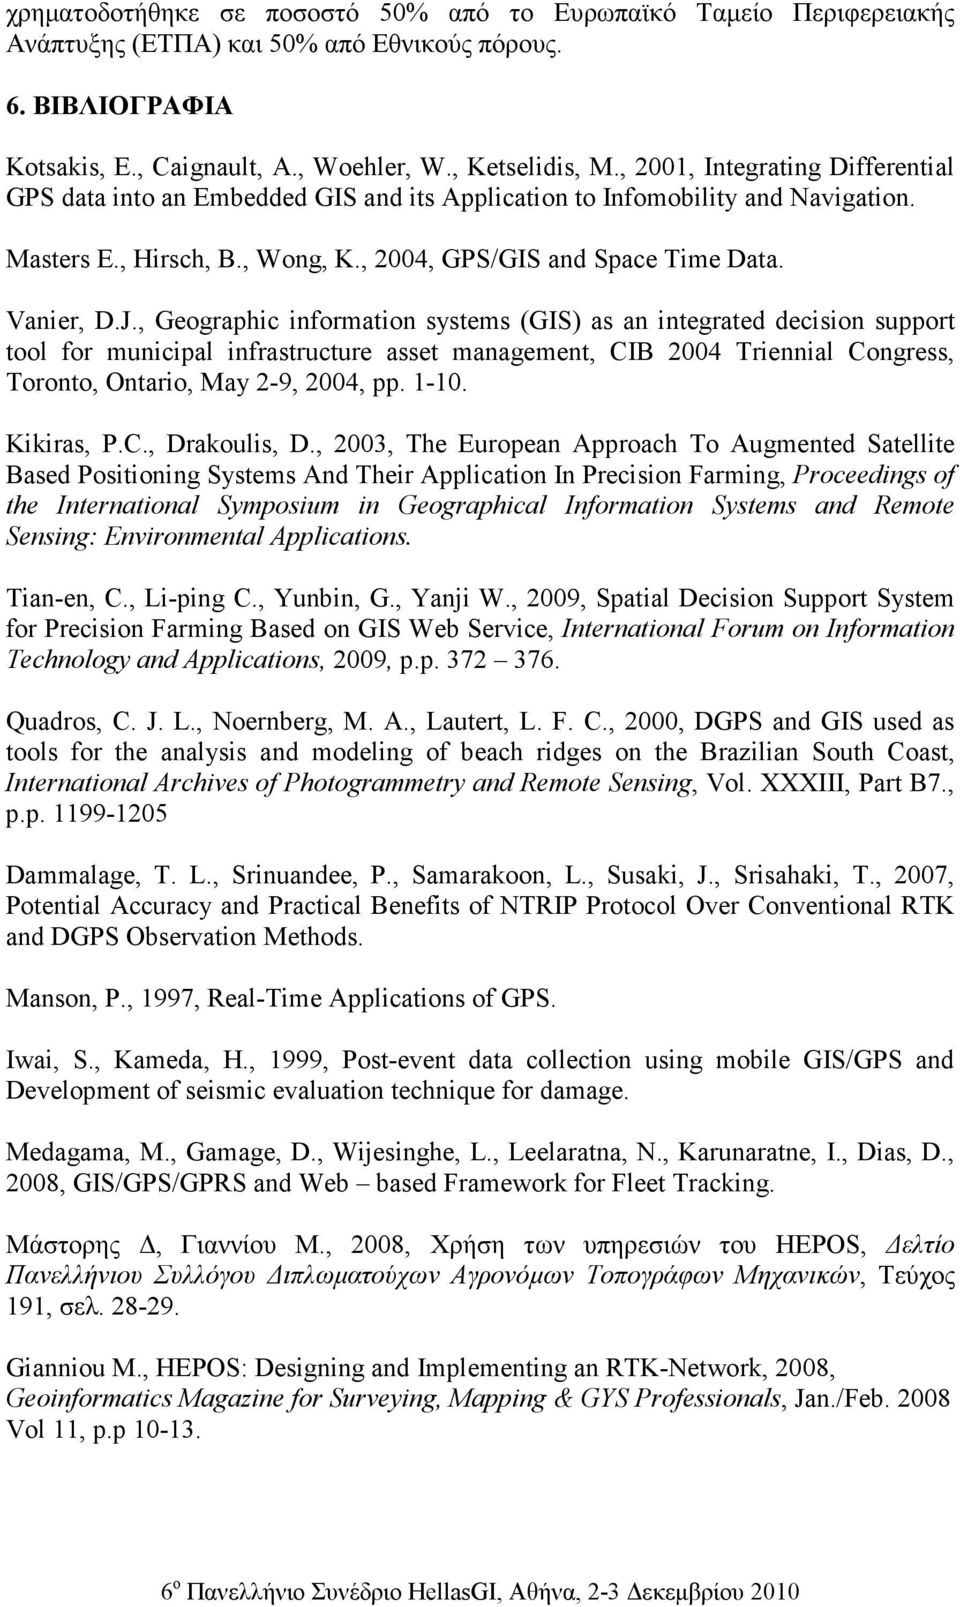 , Geographic information systems (GIS) as an integrated decision support tool for municipal infrastructure asset management, CIB 2004 Triennial Congress, Toronto, Ontario, May 2-9, 2004, pp. 1-10.